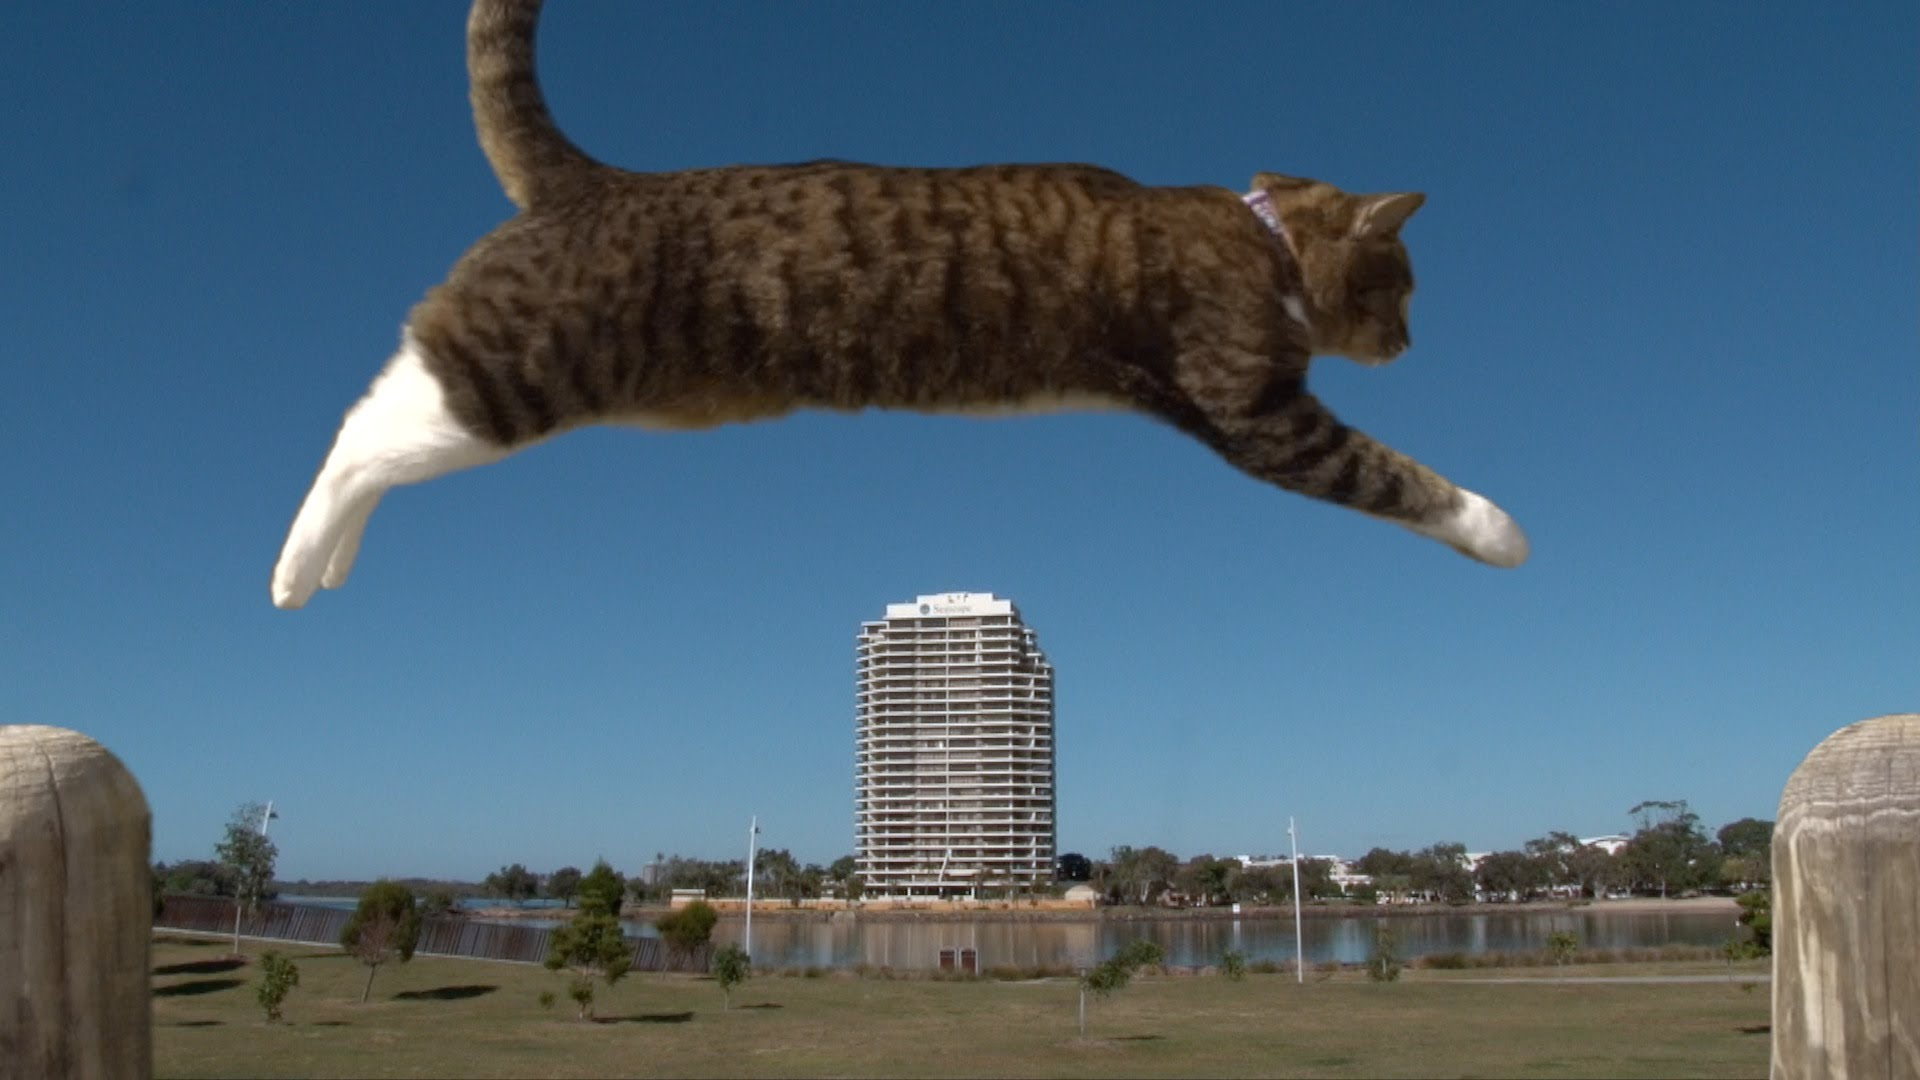 Purrkour - The awesome parkour cat